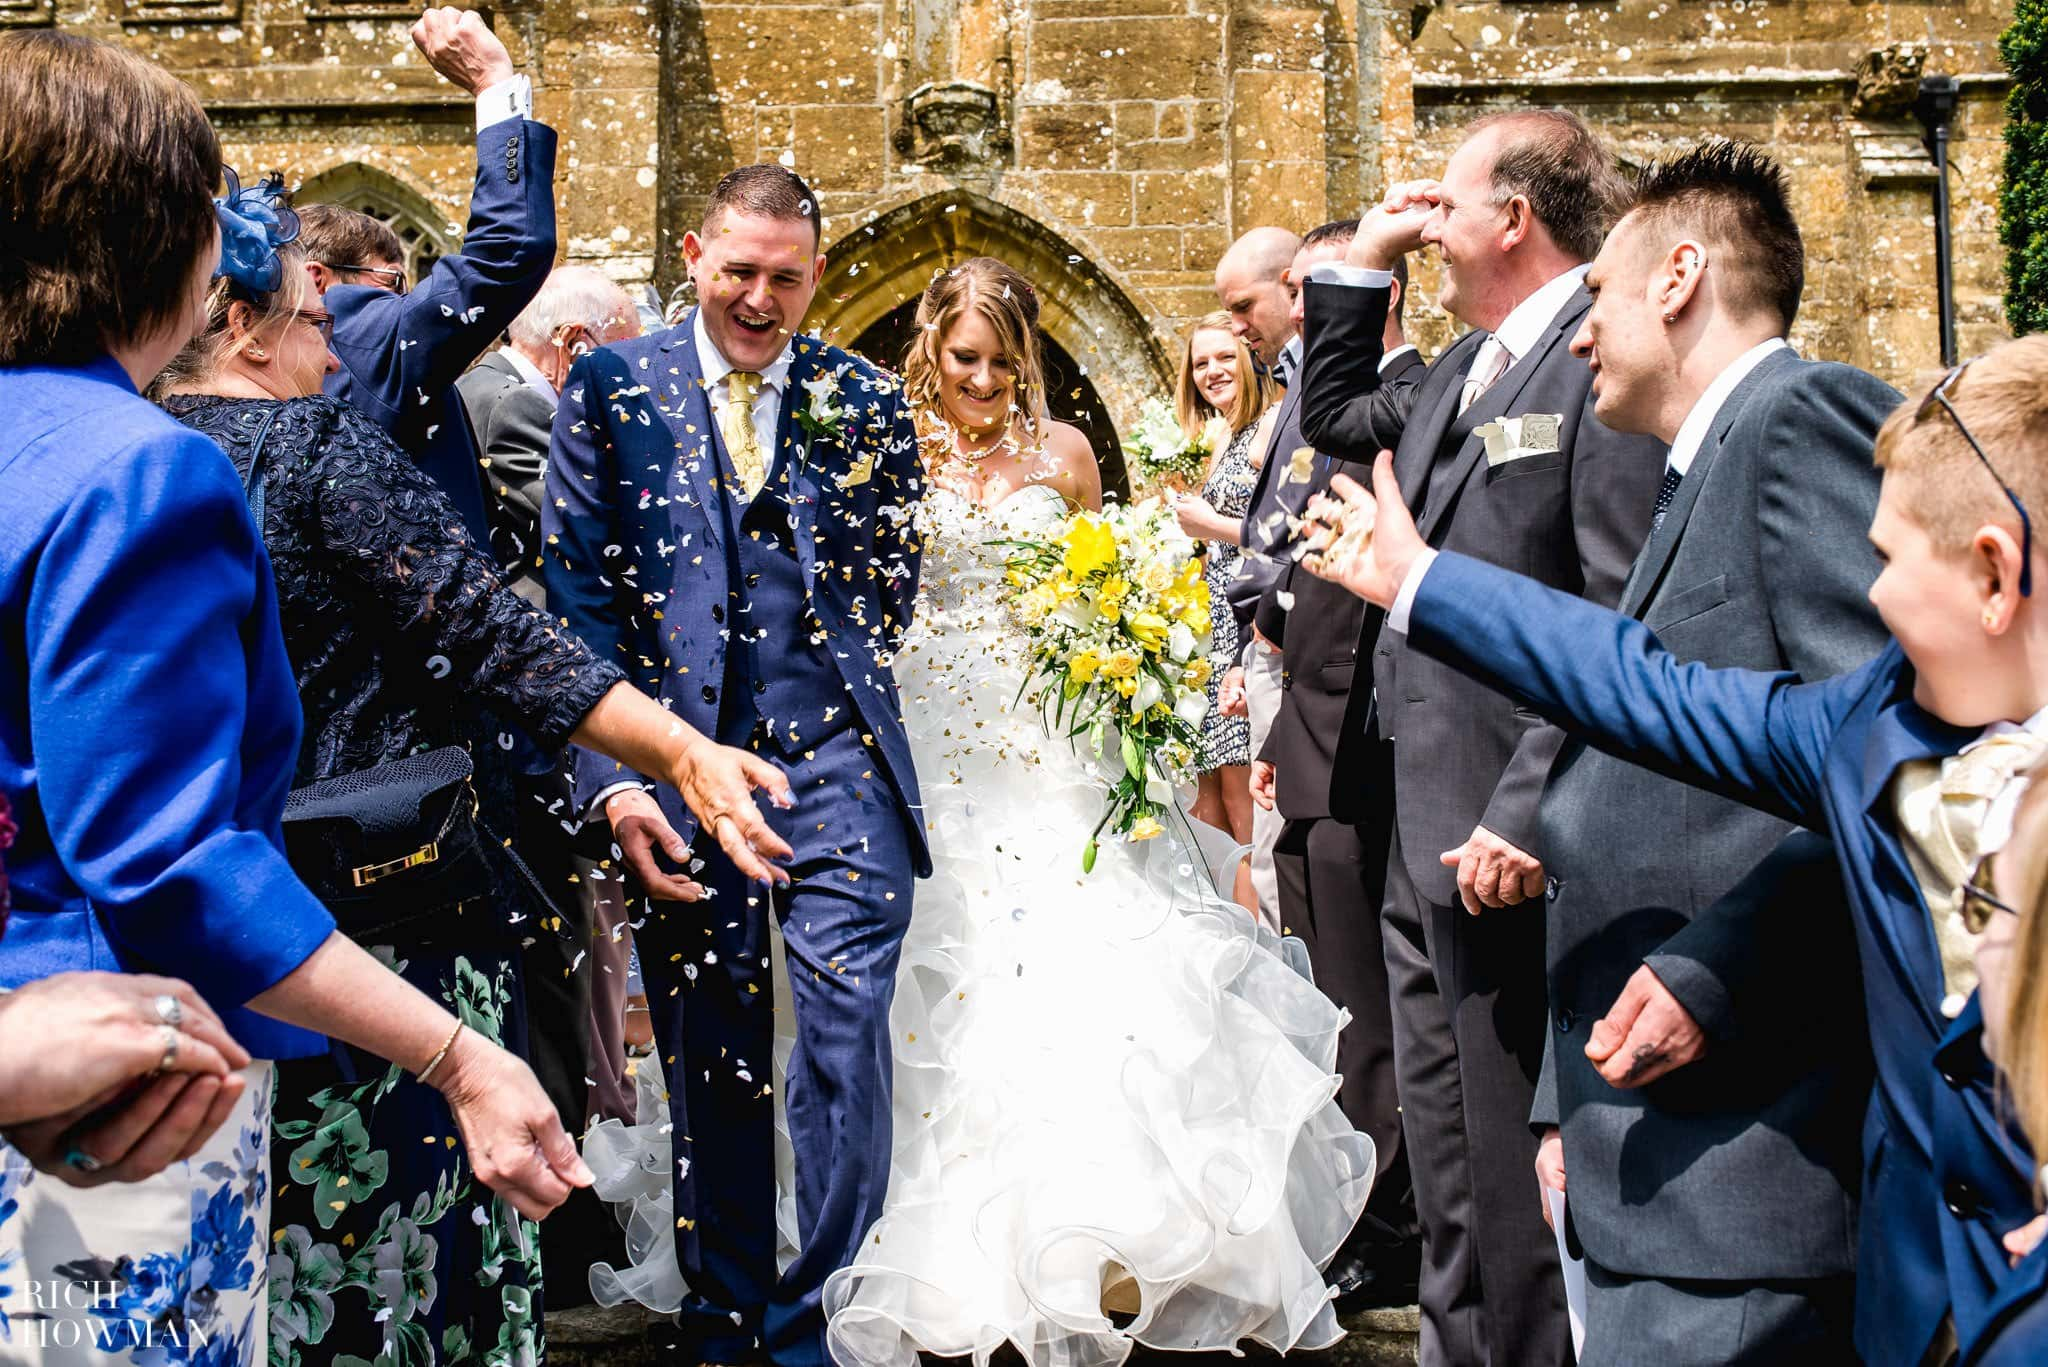 The Bride and Groom running through a shower of confetti after getting married at All Saints Church in Merriott, Somerset